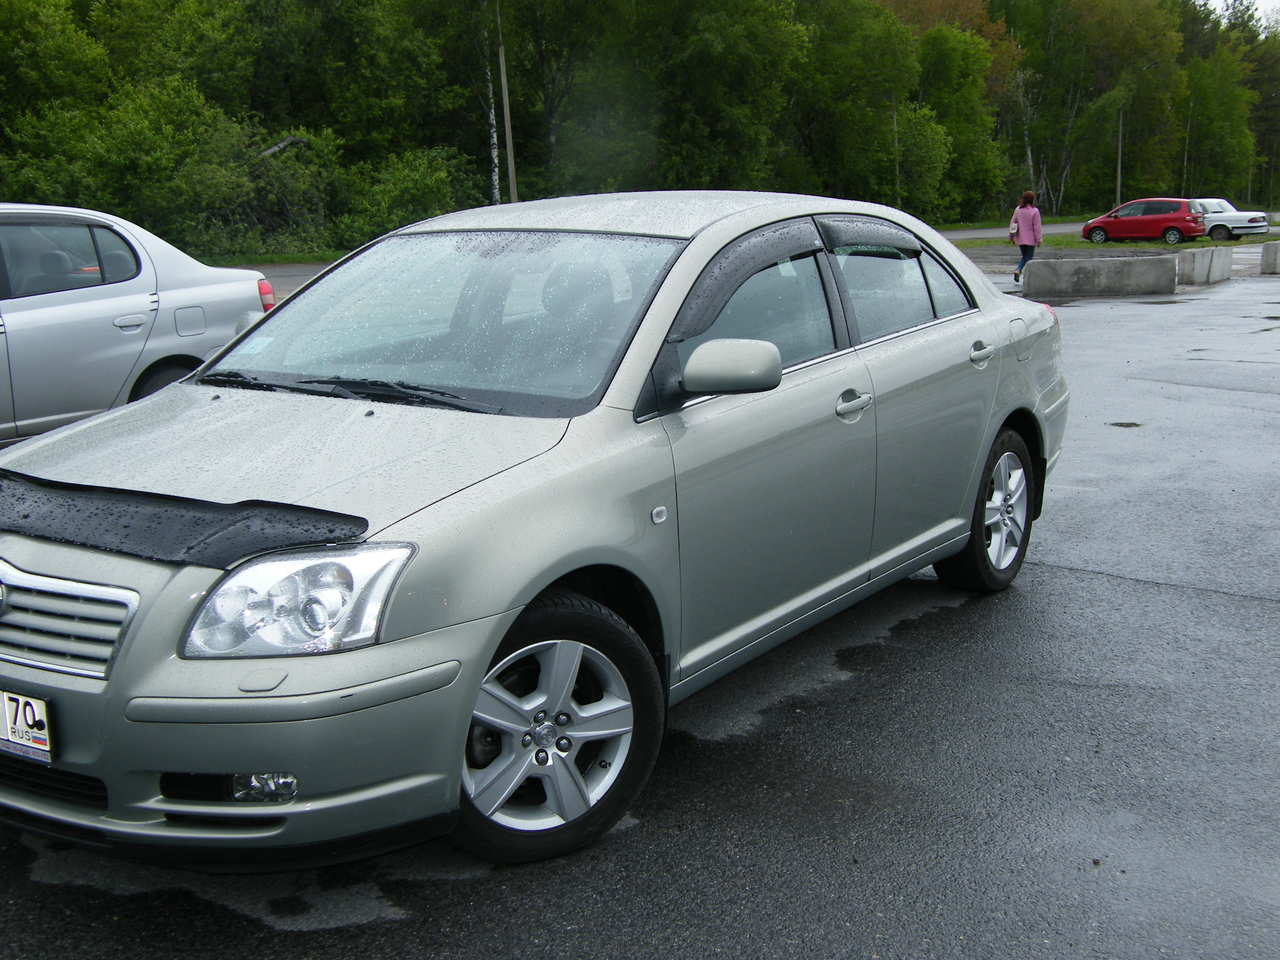 used 2006 toyota avensis photos  1800cc   gasoline  ff  manual for sale toyota avensis 2006 repair manual toyota avensis 2006 manual